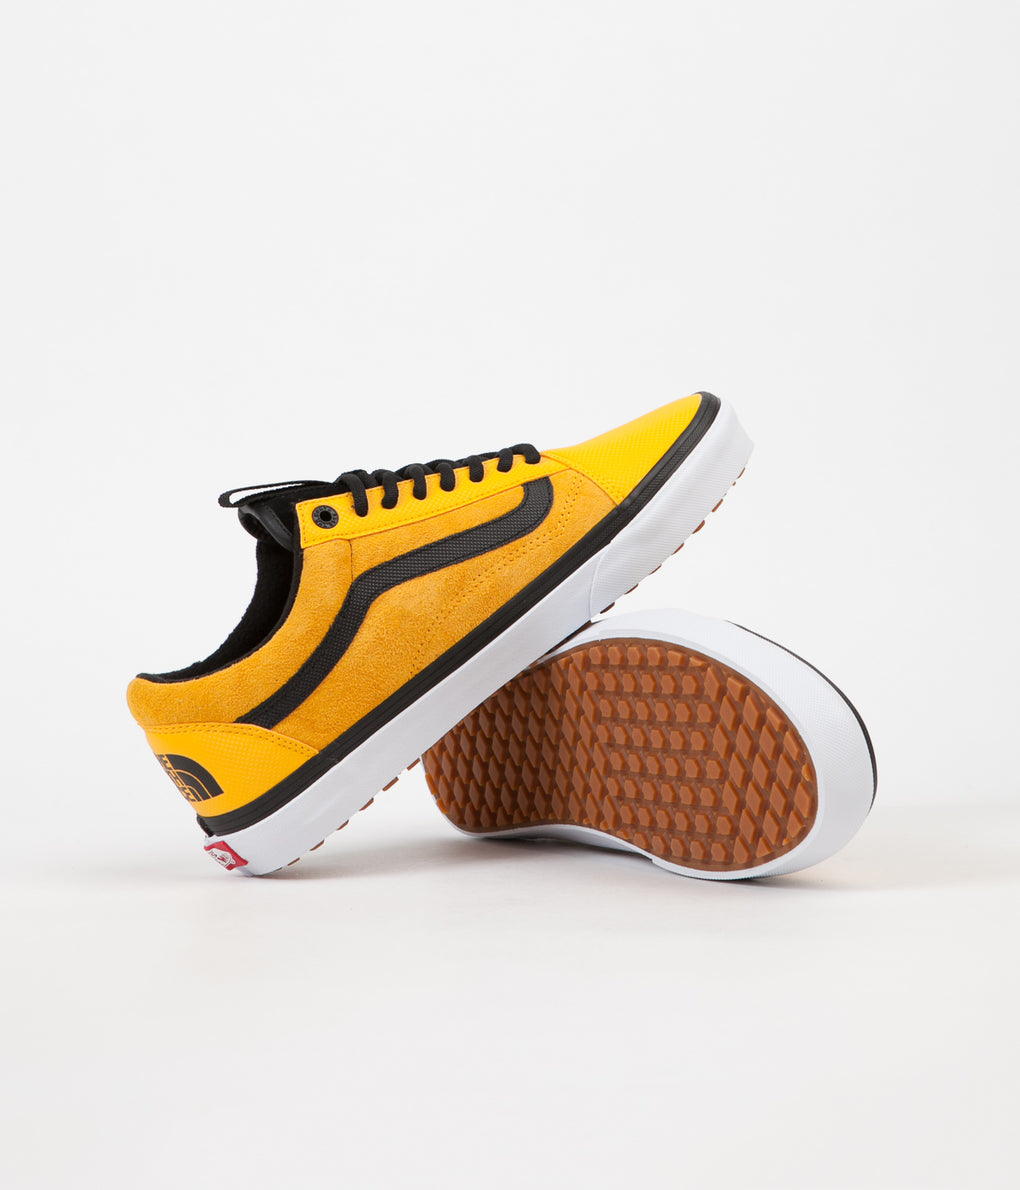 Vans X The North Face  Old Skool MTE DX Shoes - Yellow / Black